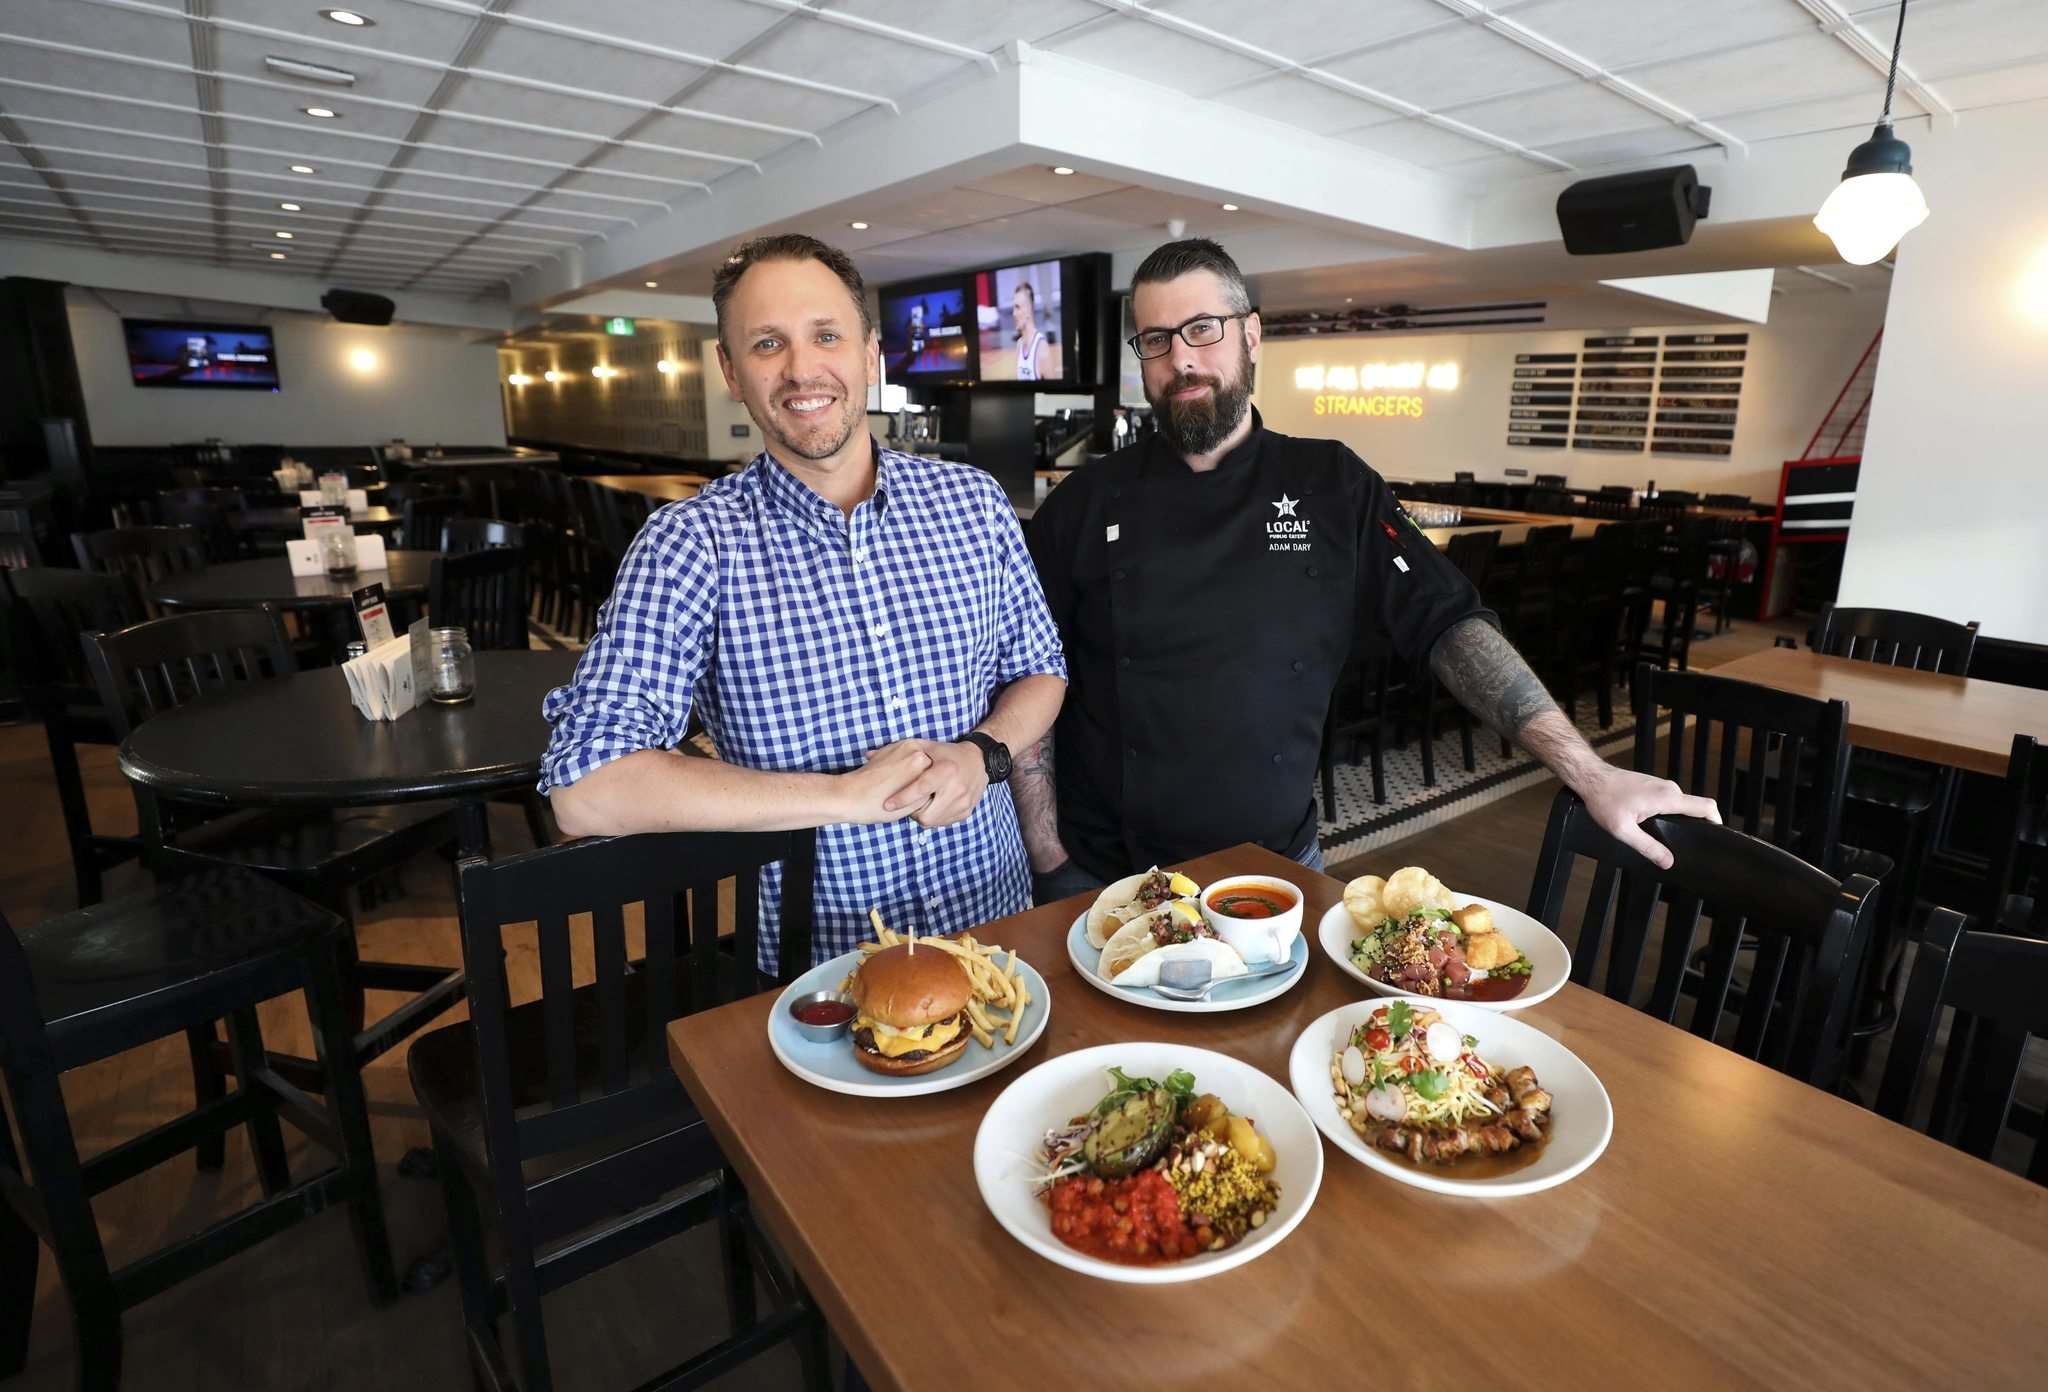 General Manager Sean Lough (left) with Chef Adam Dary and a selection of dishes including (from top left clockwise): Local burger, Mexican fish tacos with tomato soup, poke rice bowl, Thai noodle salad and power bowl. (Ruth Bonneville / Winnipeg Free Press)